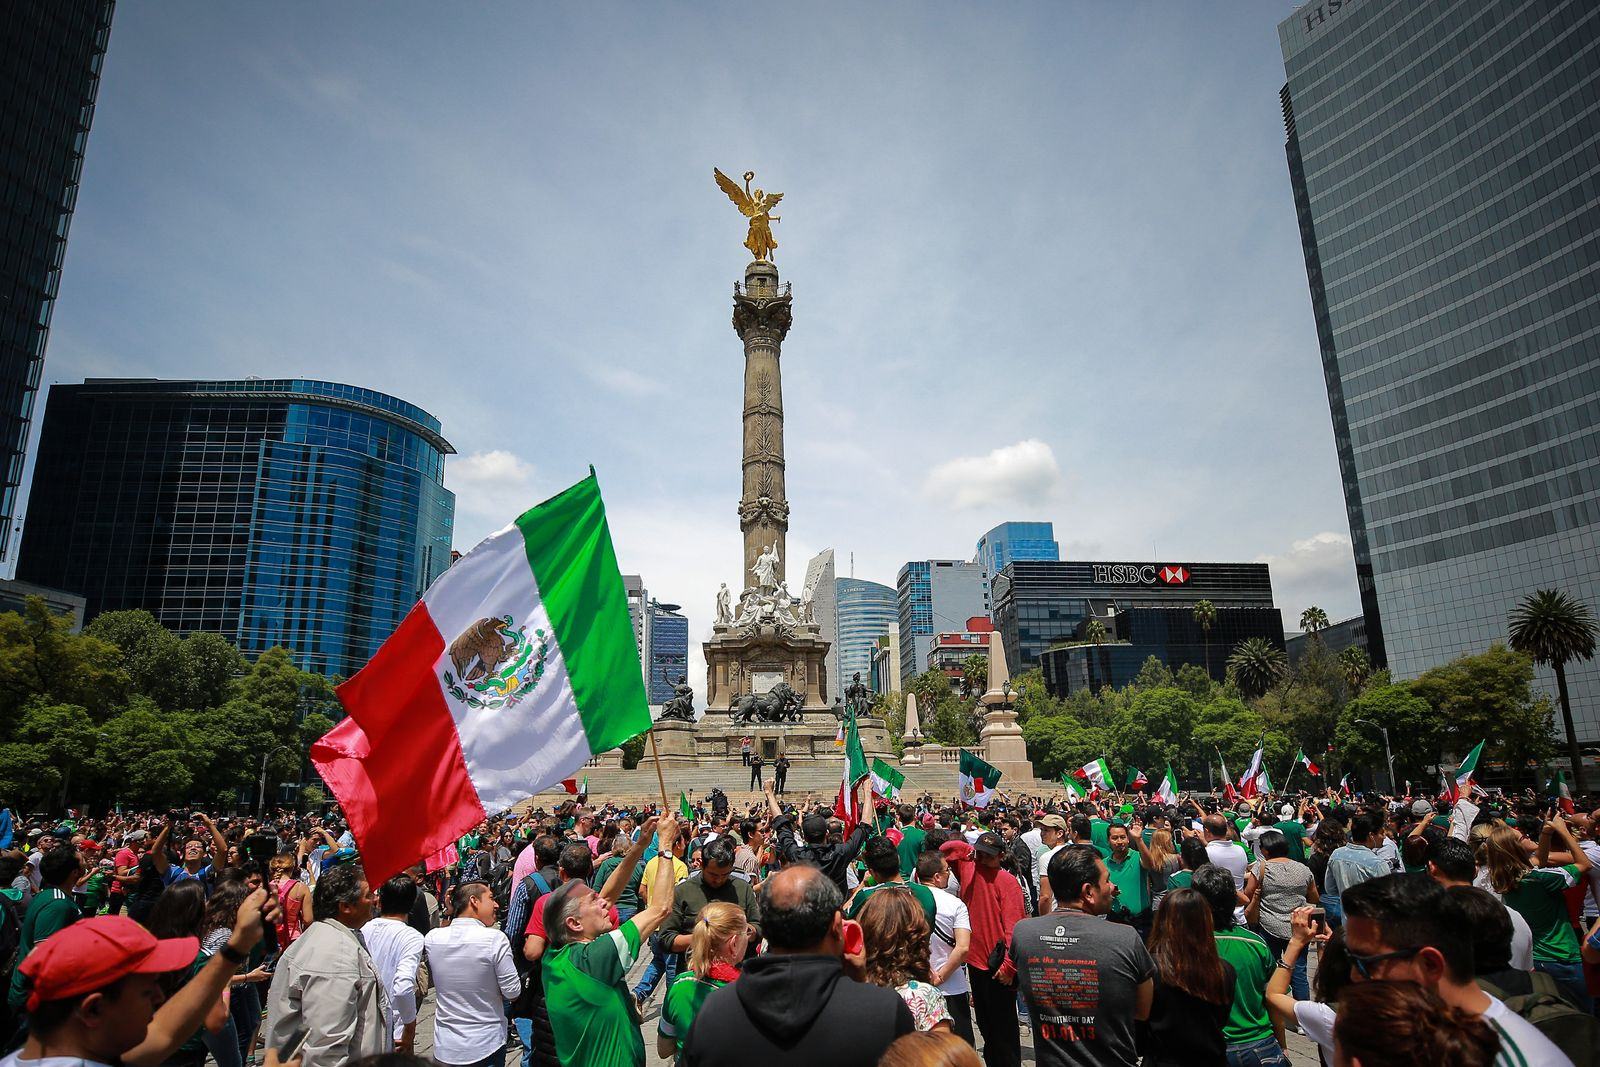 Mexico Fans Celebrate Victory Over Germany